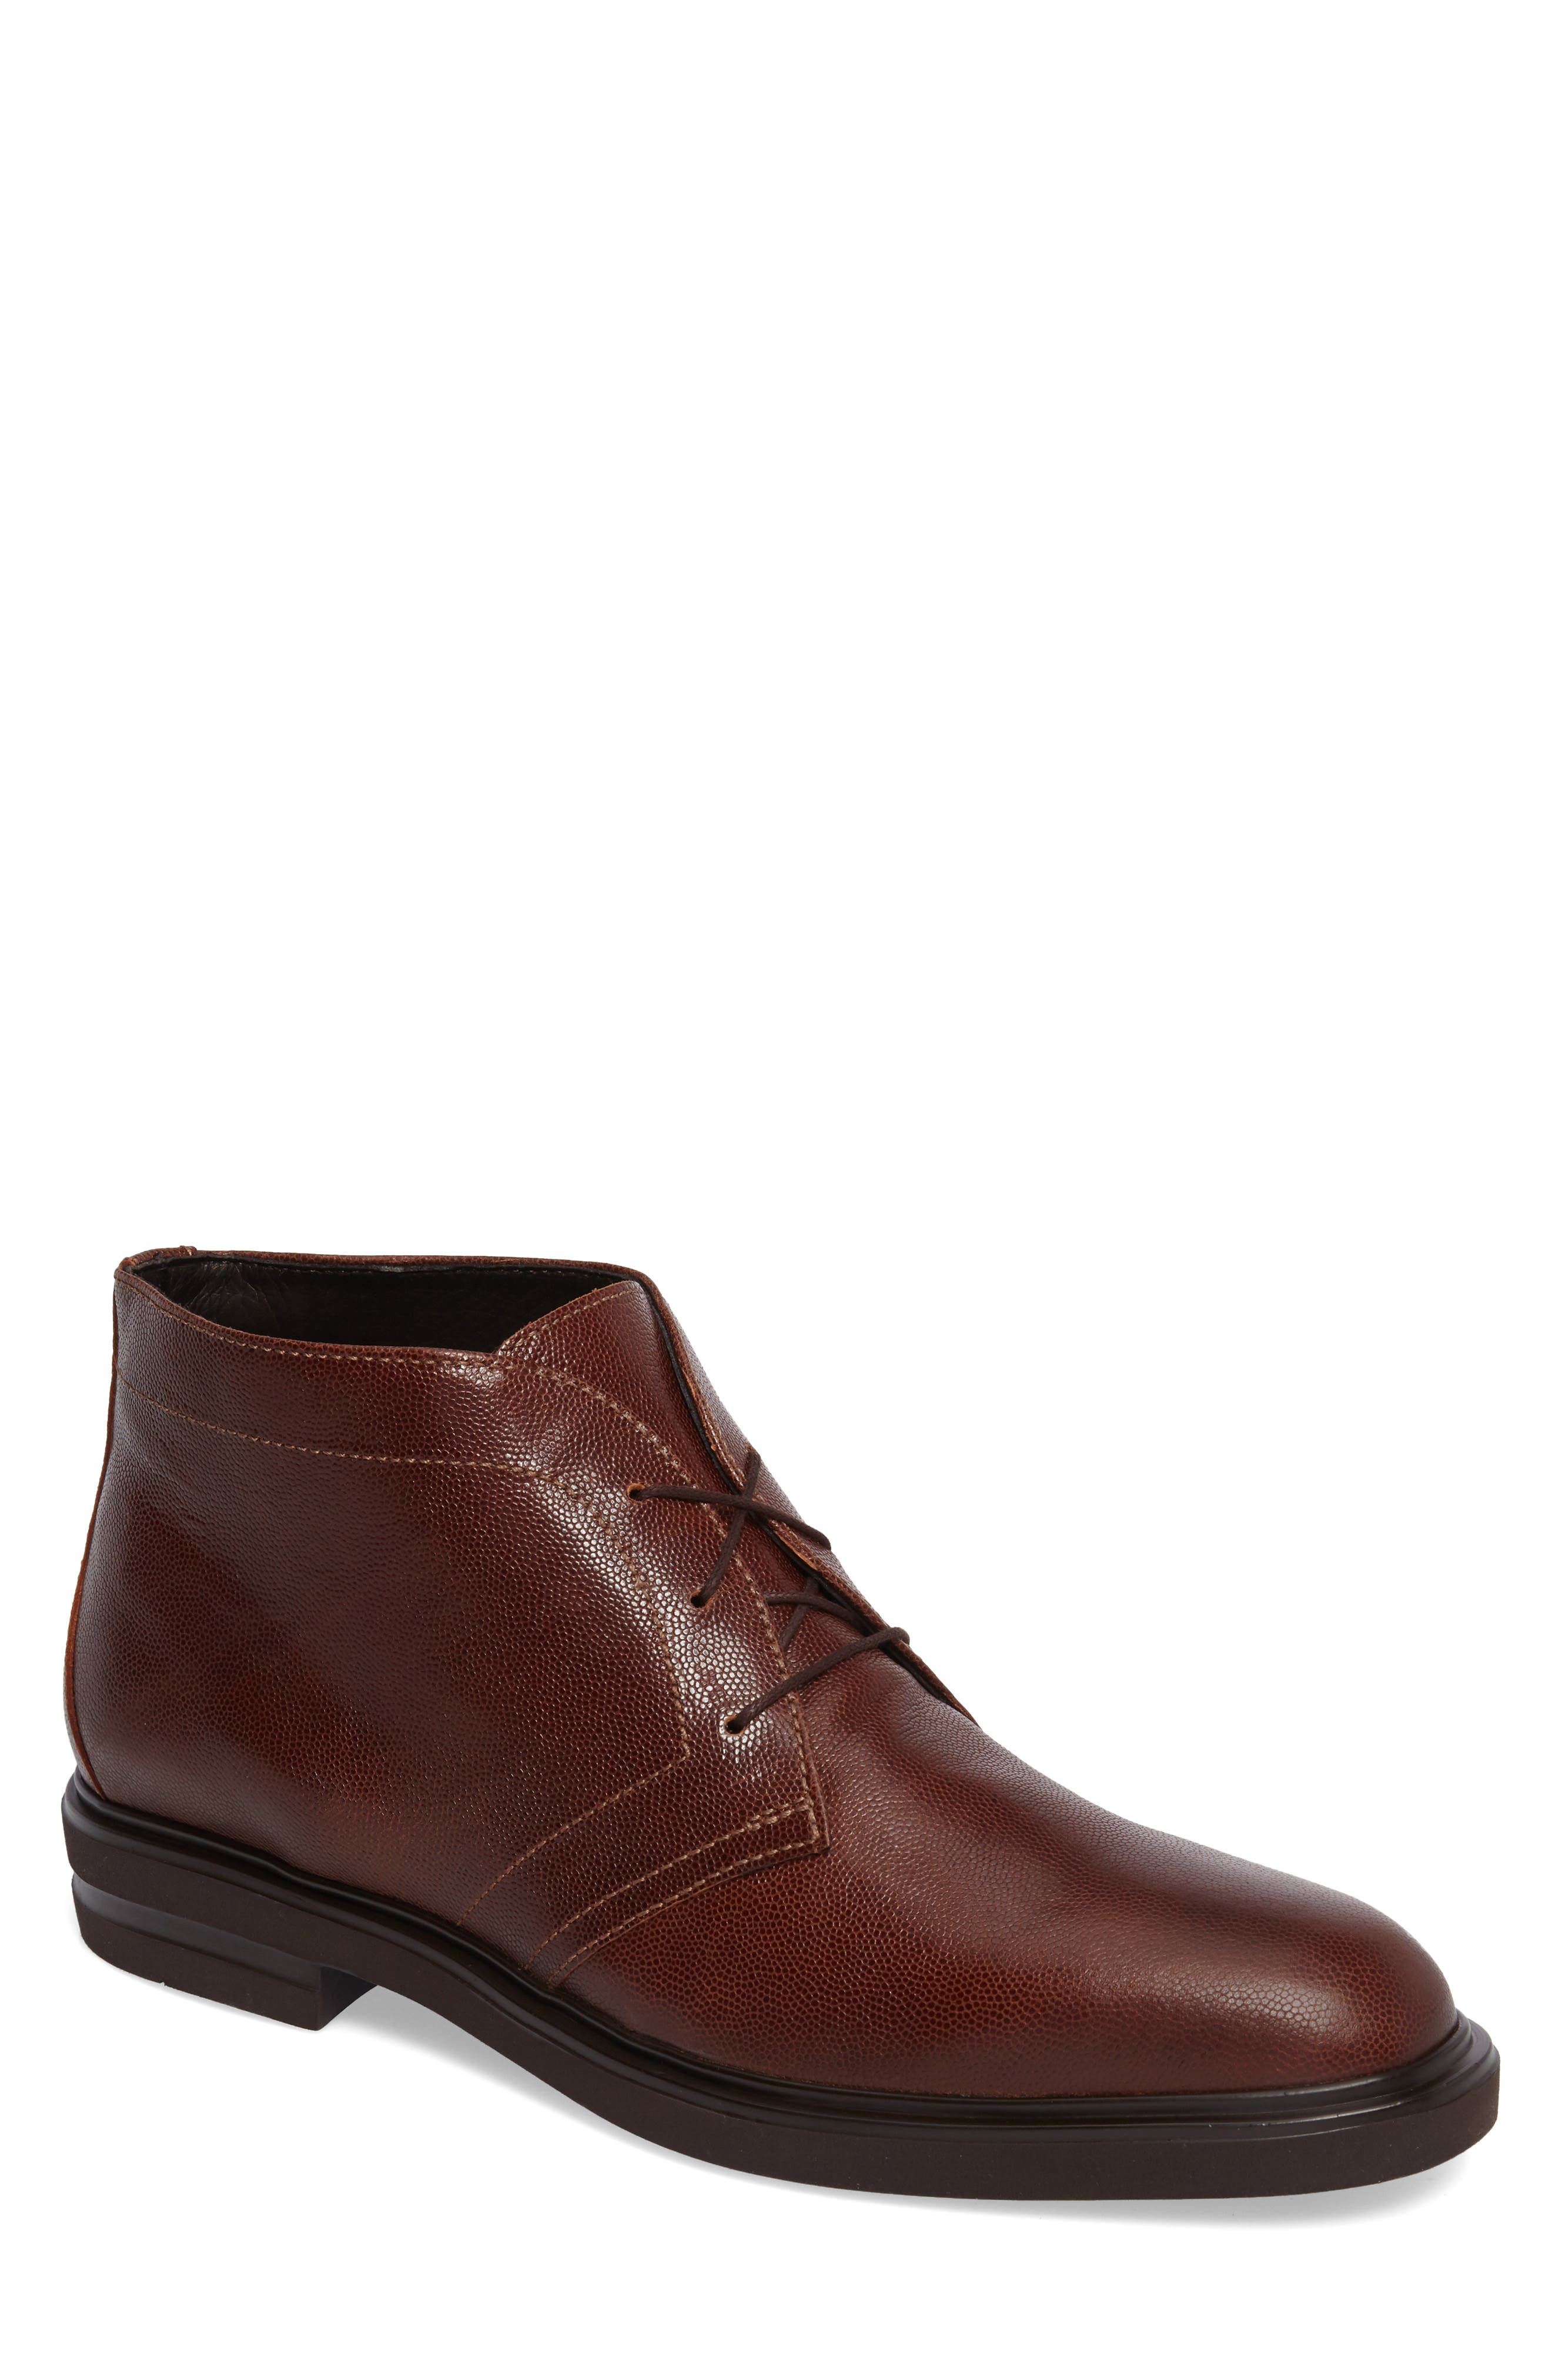 Donald J Pliner Ericio Chukka Boot (Men)